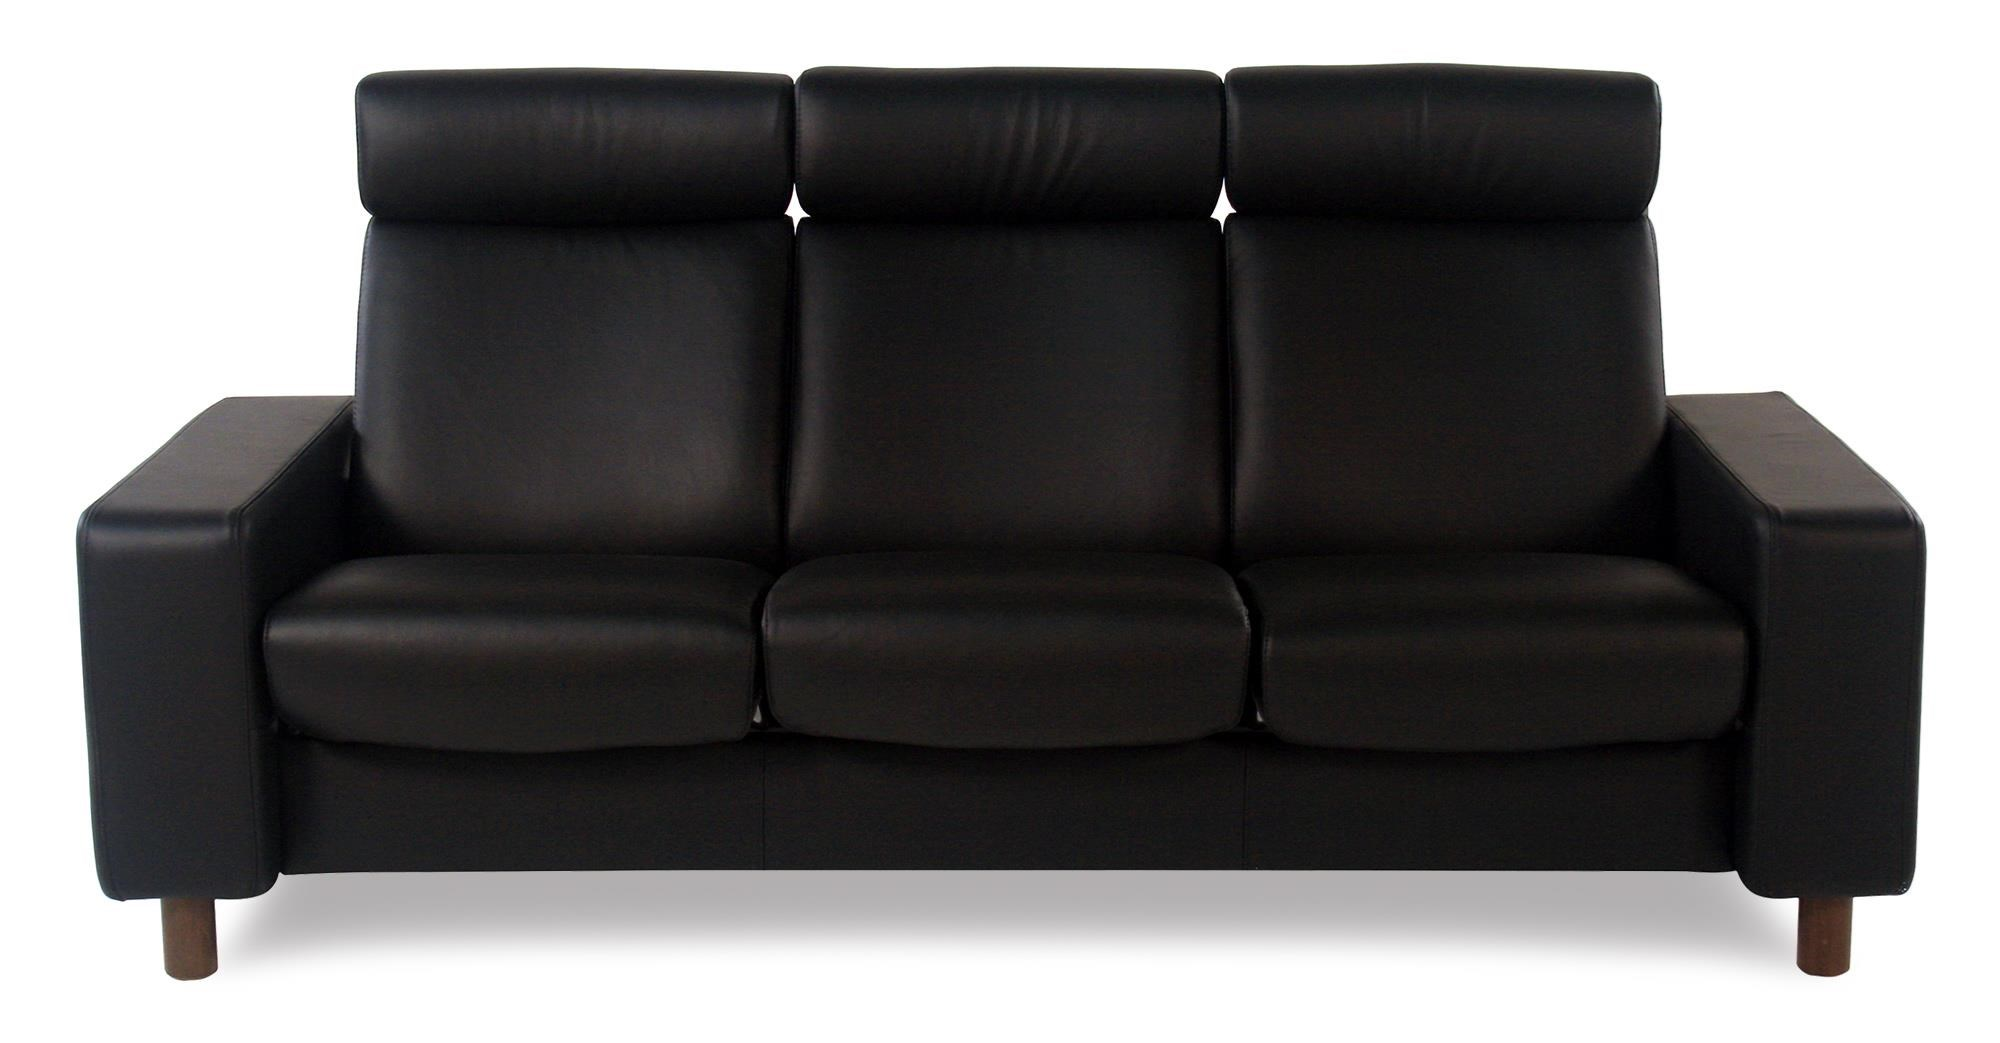 Stressless by Ekornes Stressless Pause 3 Seat High Back Sofa